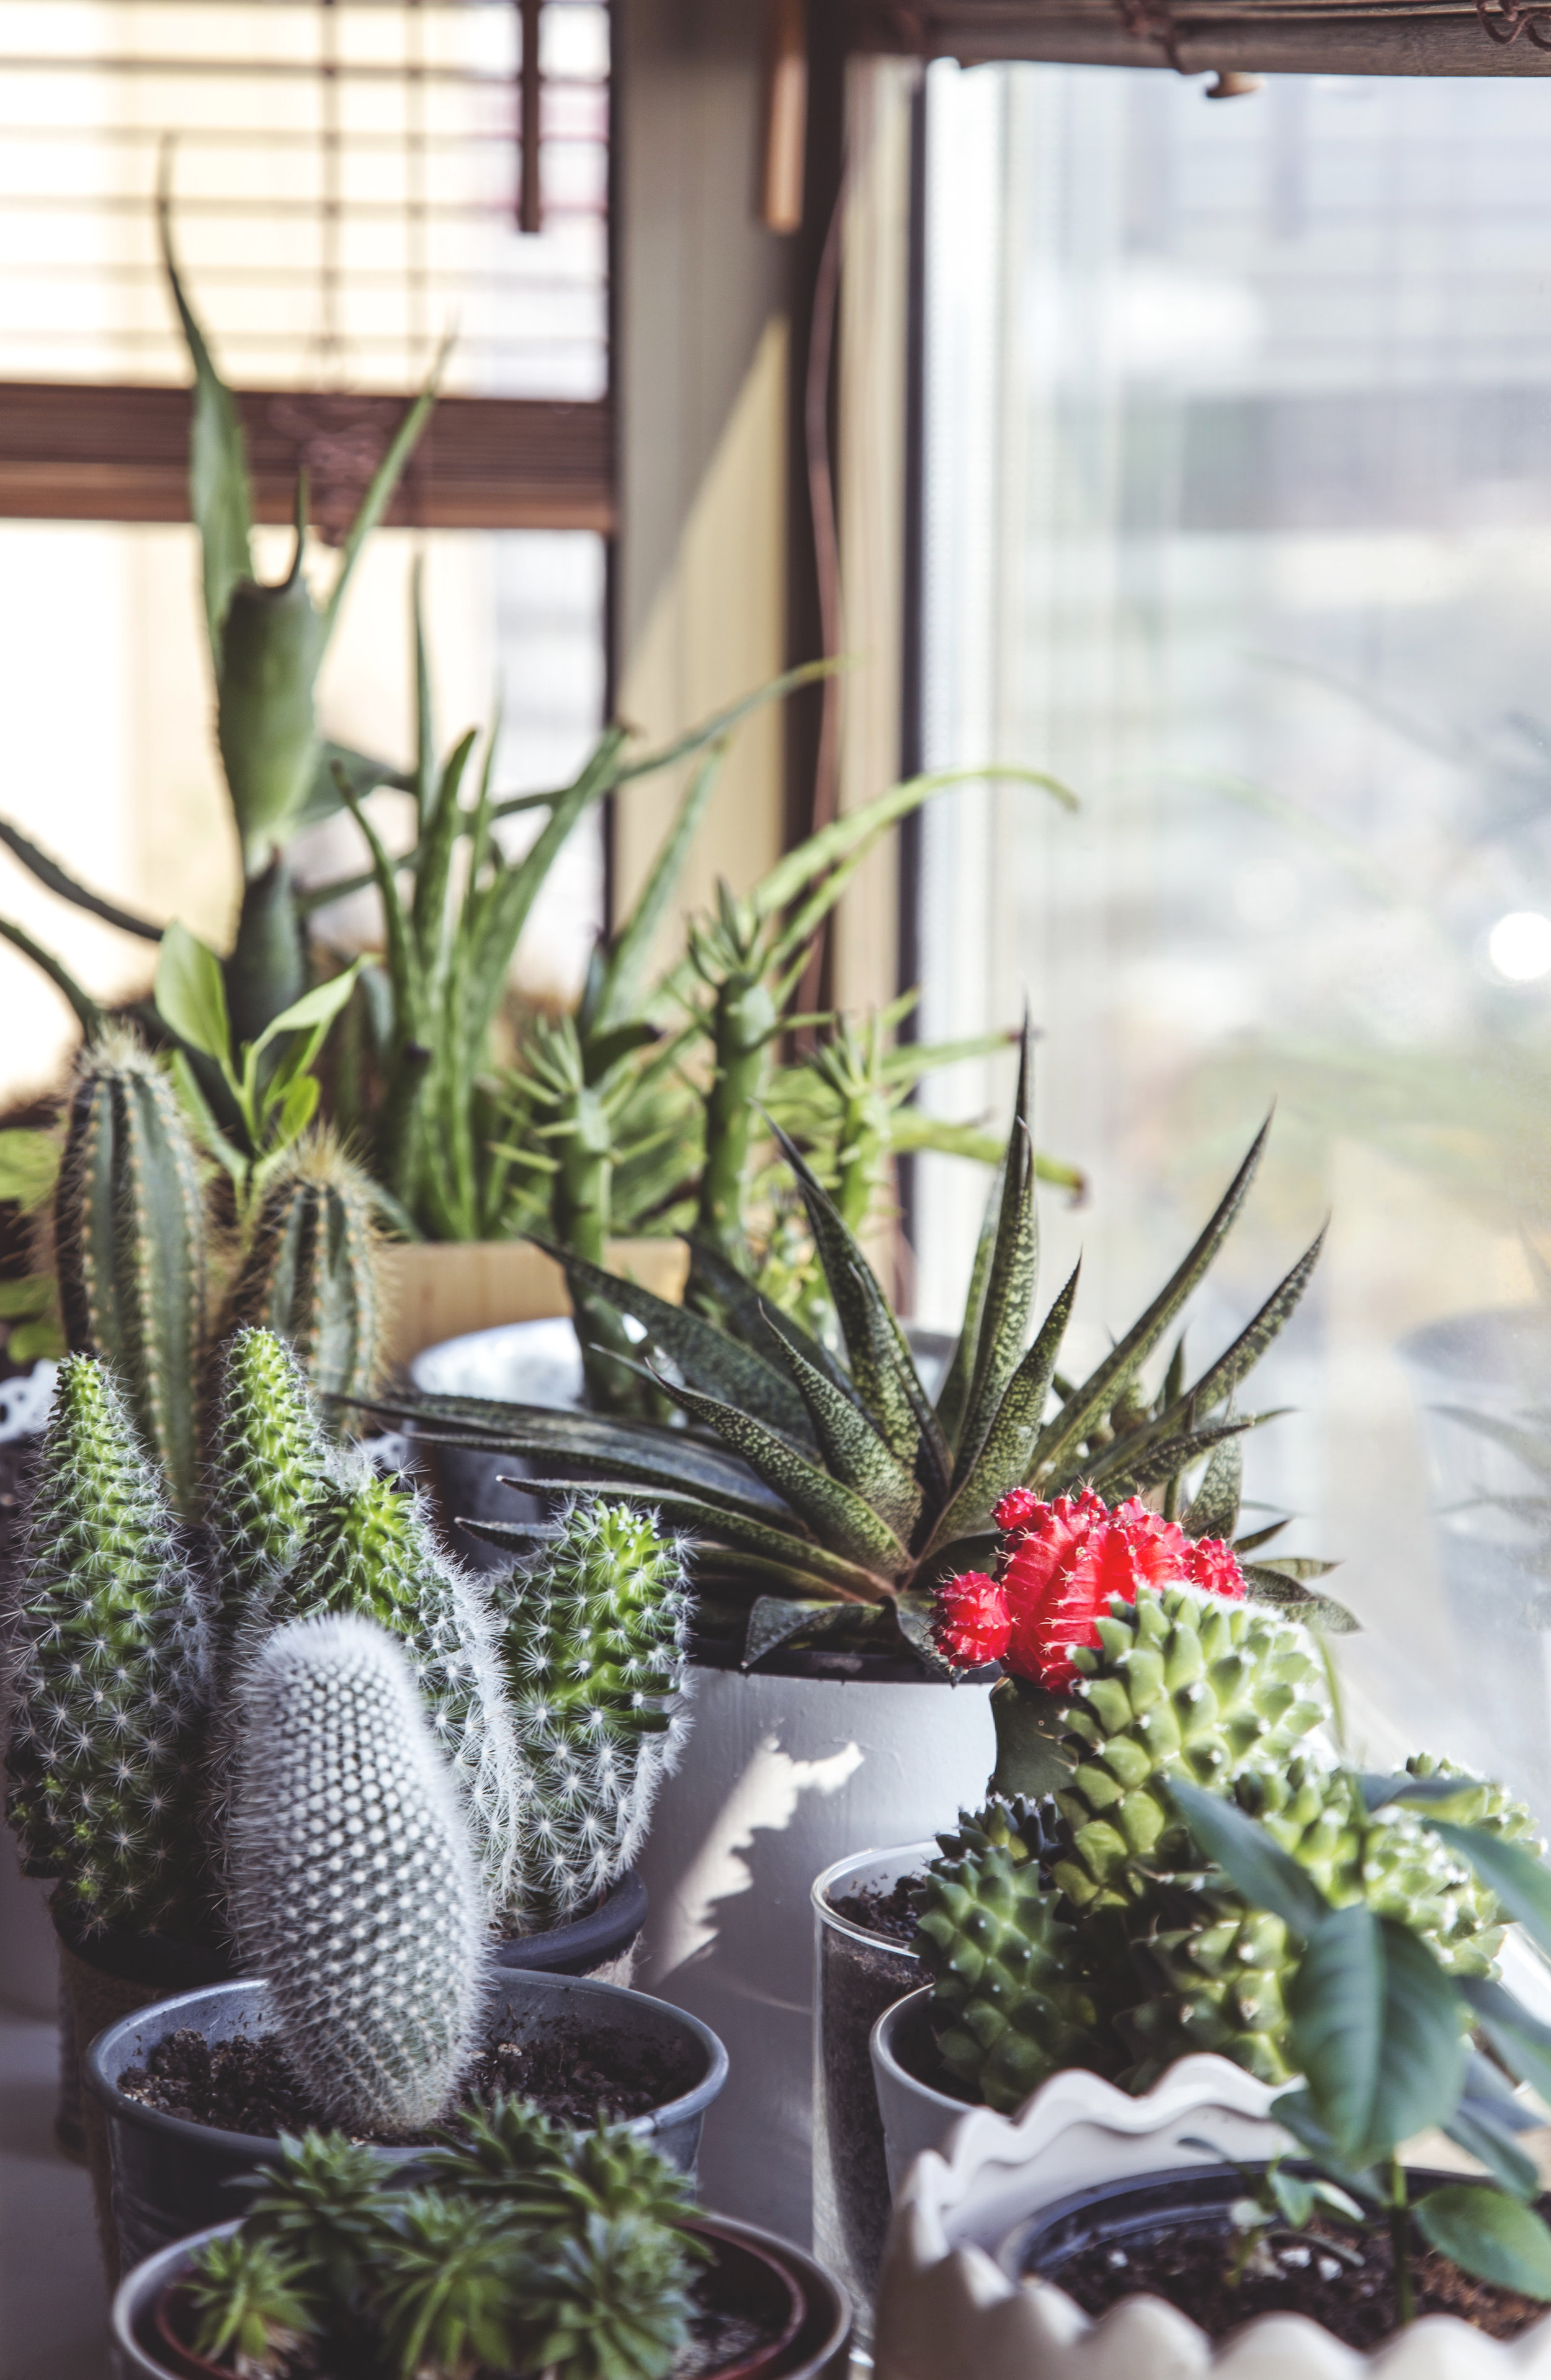 Plant Murderers Welcome - It's not you, it's the plant. We're here to help you find the right plant for your home and lifestyle. We aim to provide affordable, unique and fun plants that will make anyone into a green thumb.